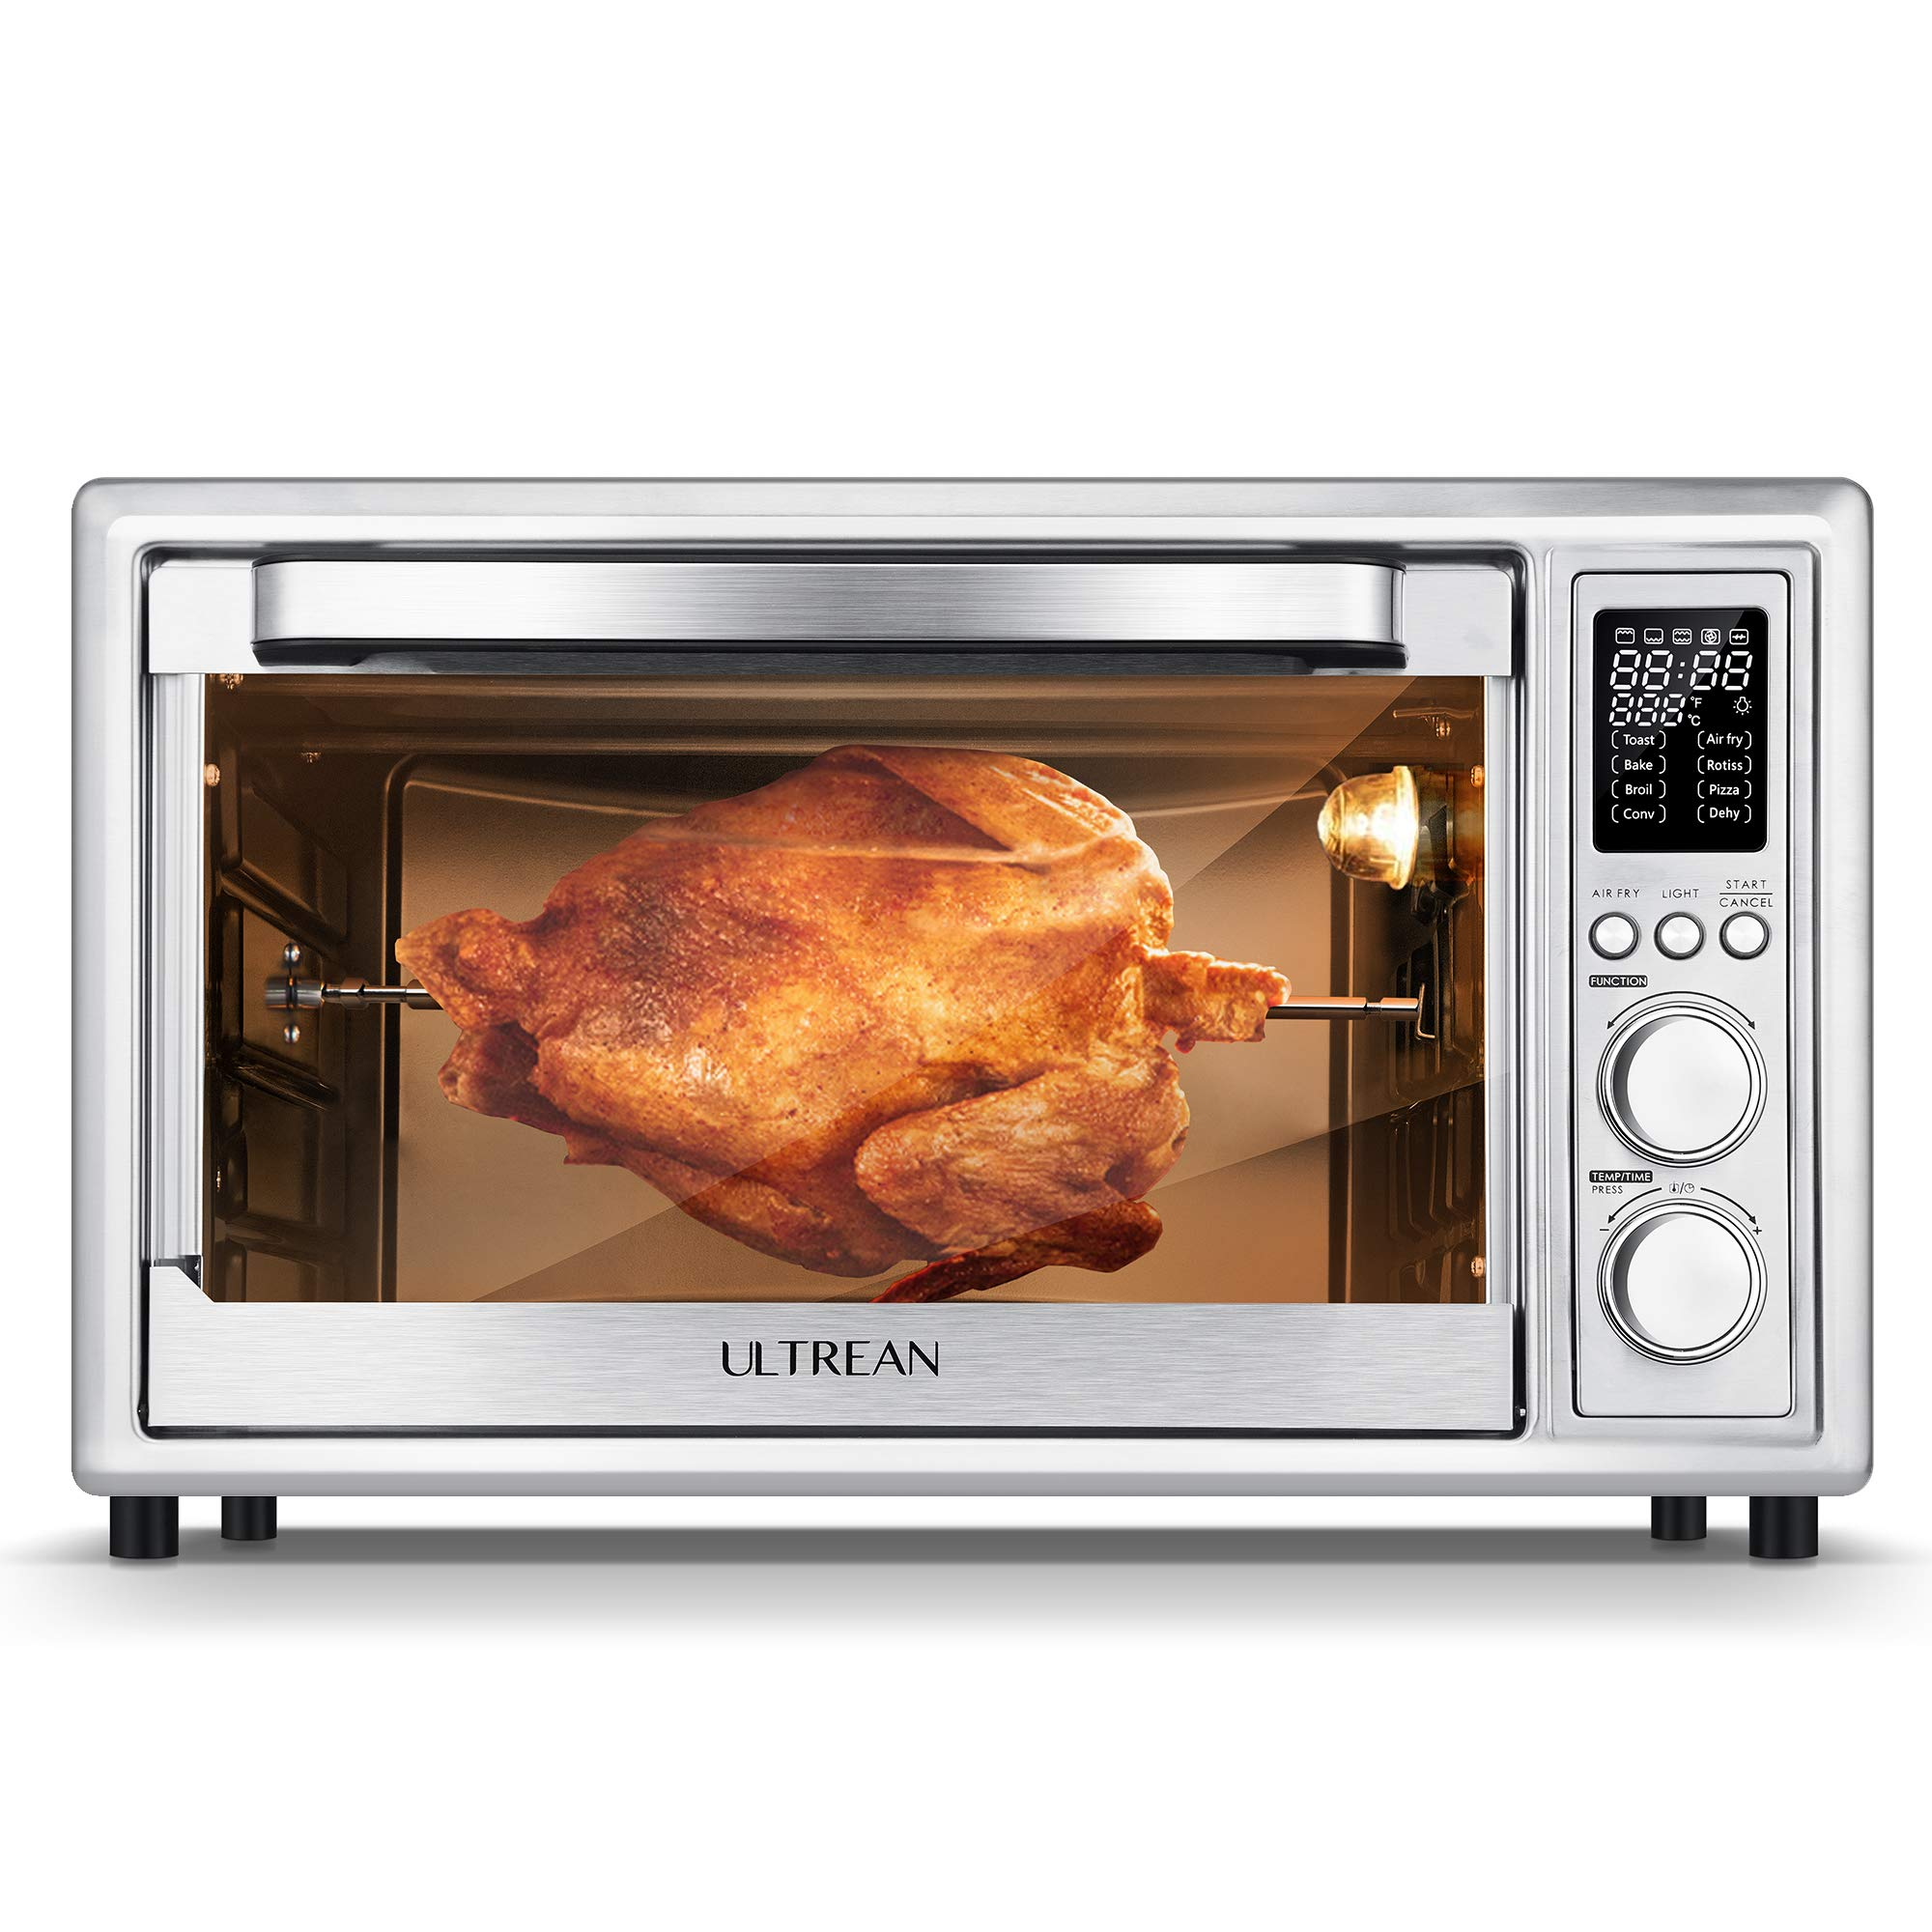 Save $62 off an air fryer toaster oven